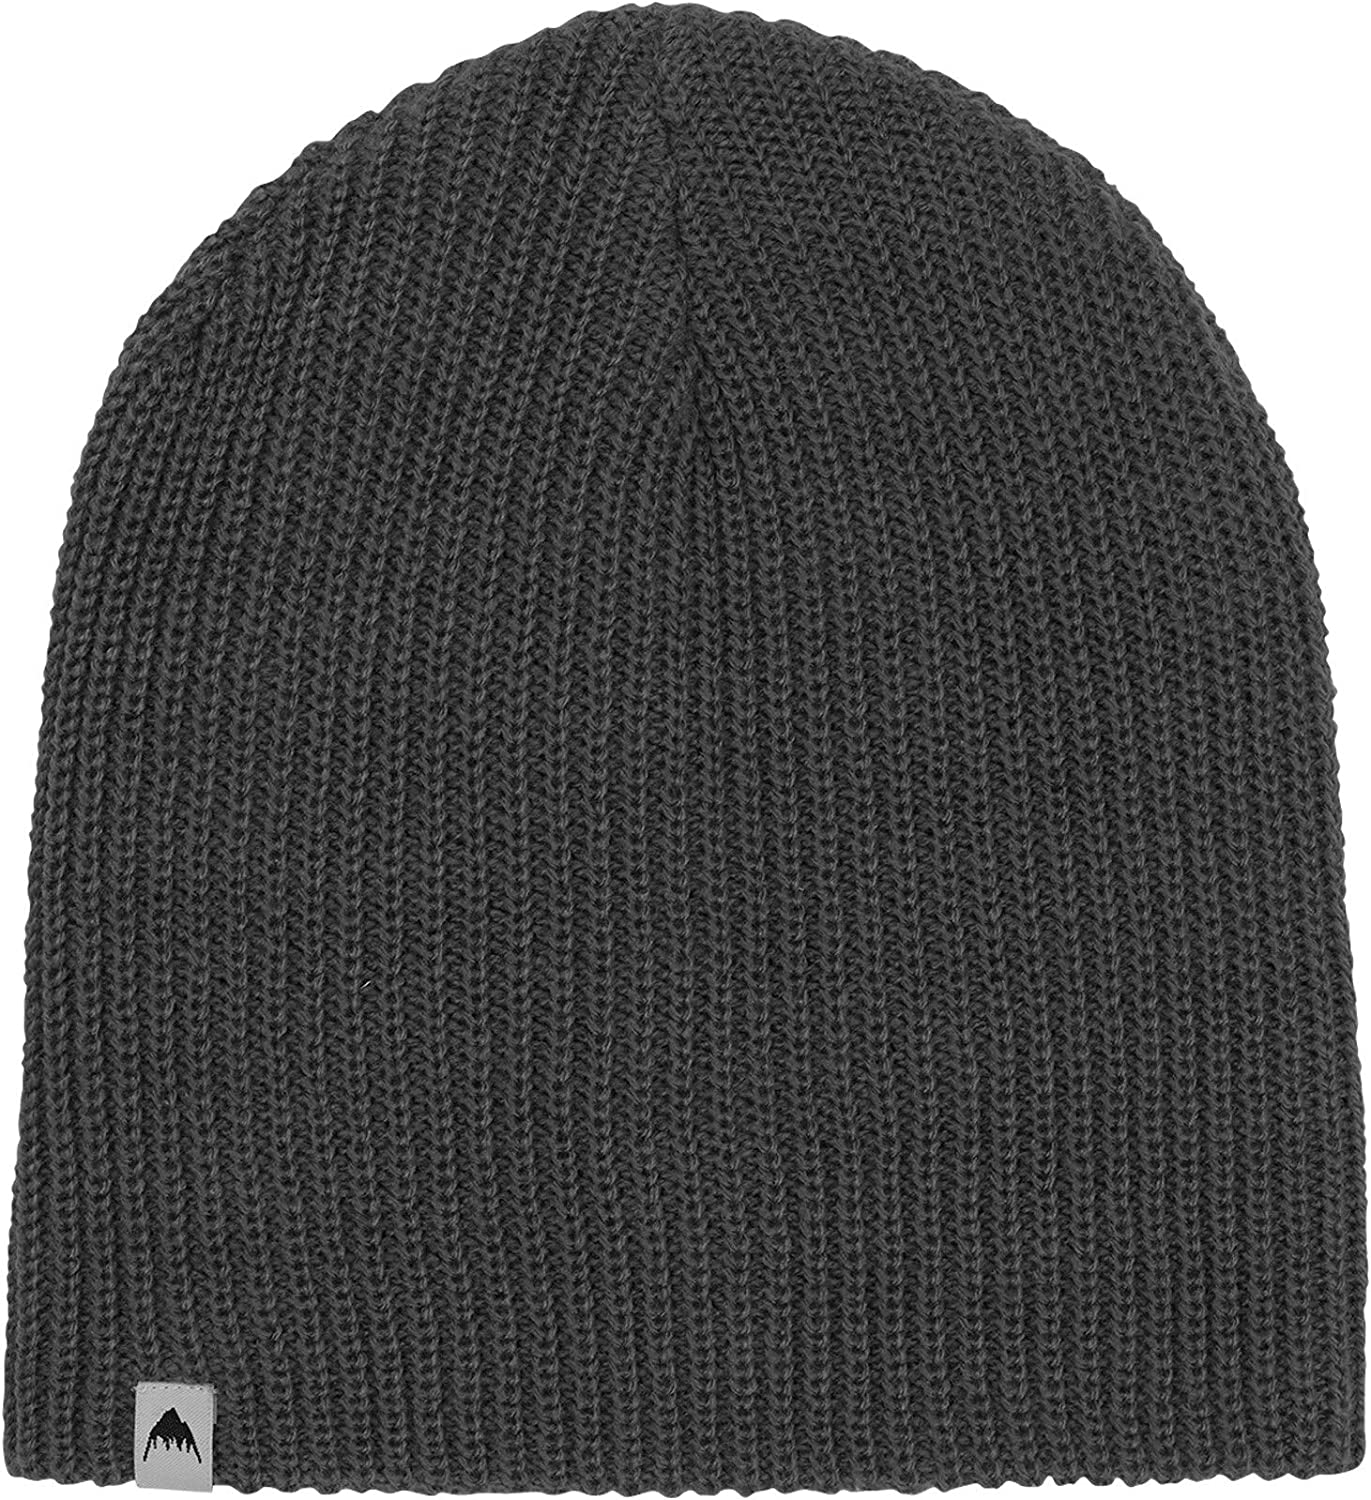 Burton Mens All Day Long Beanie, Faded Heather New, One Size : Clothing